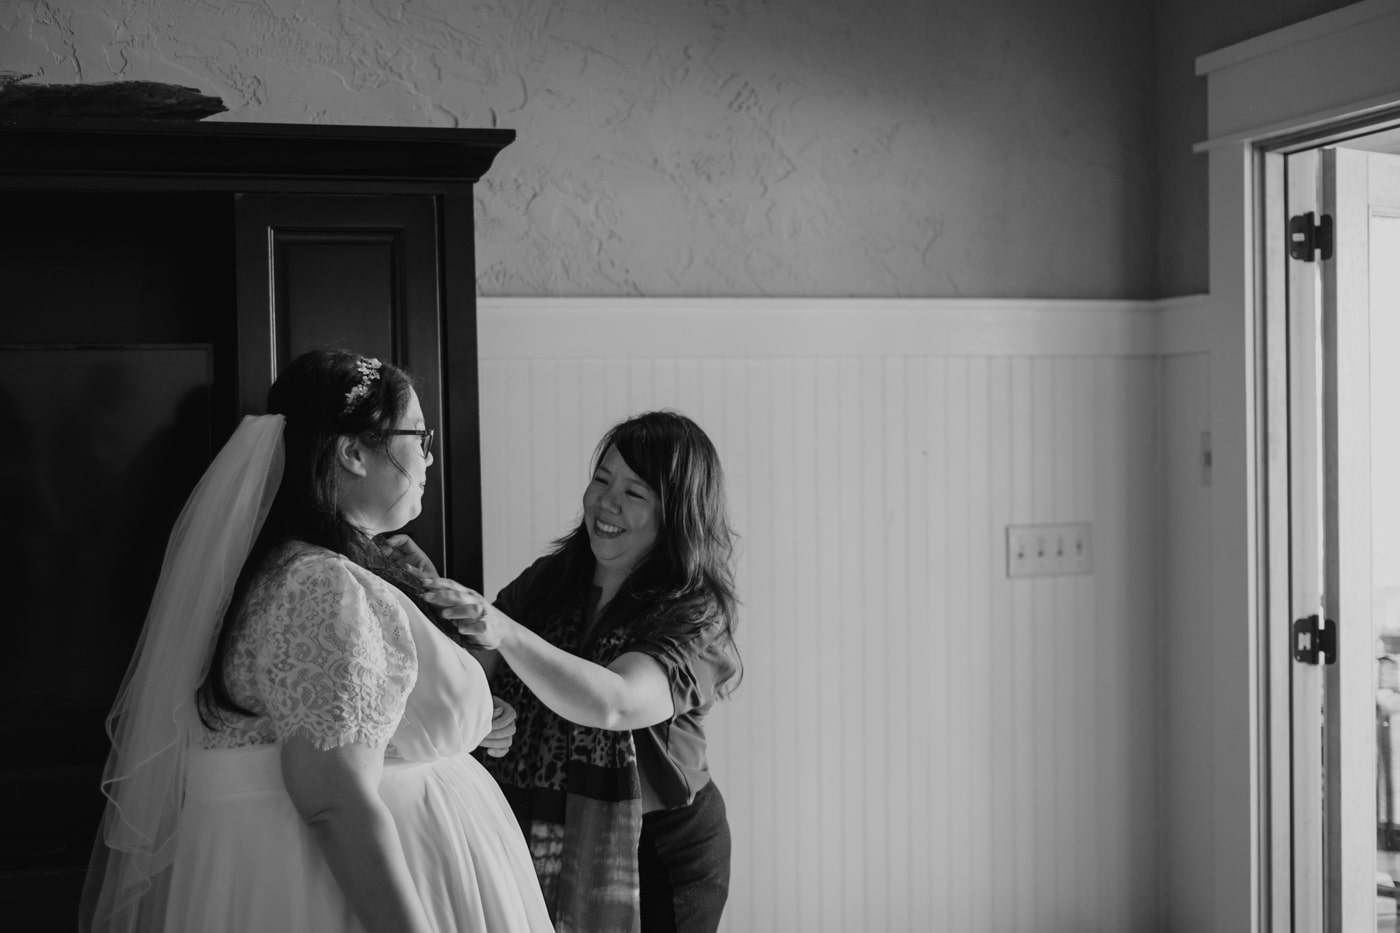 woman helps bride with jewelry on wedding day